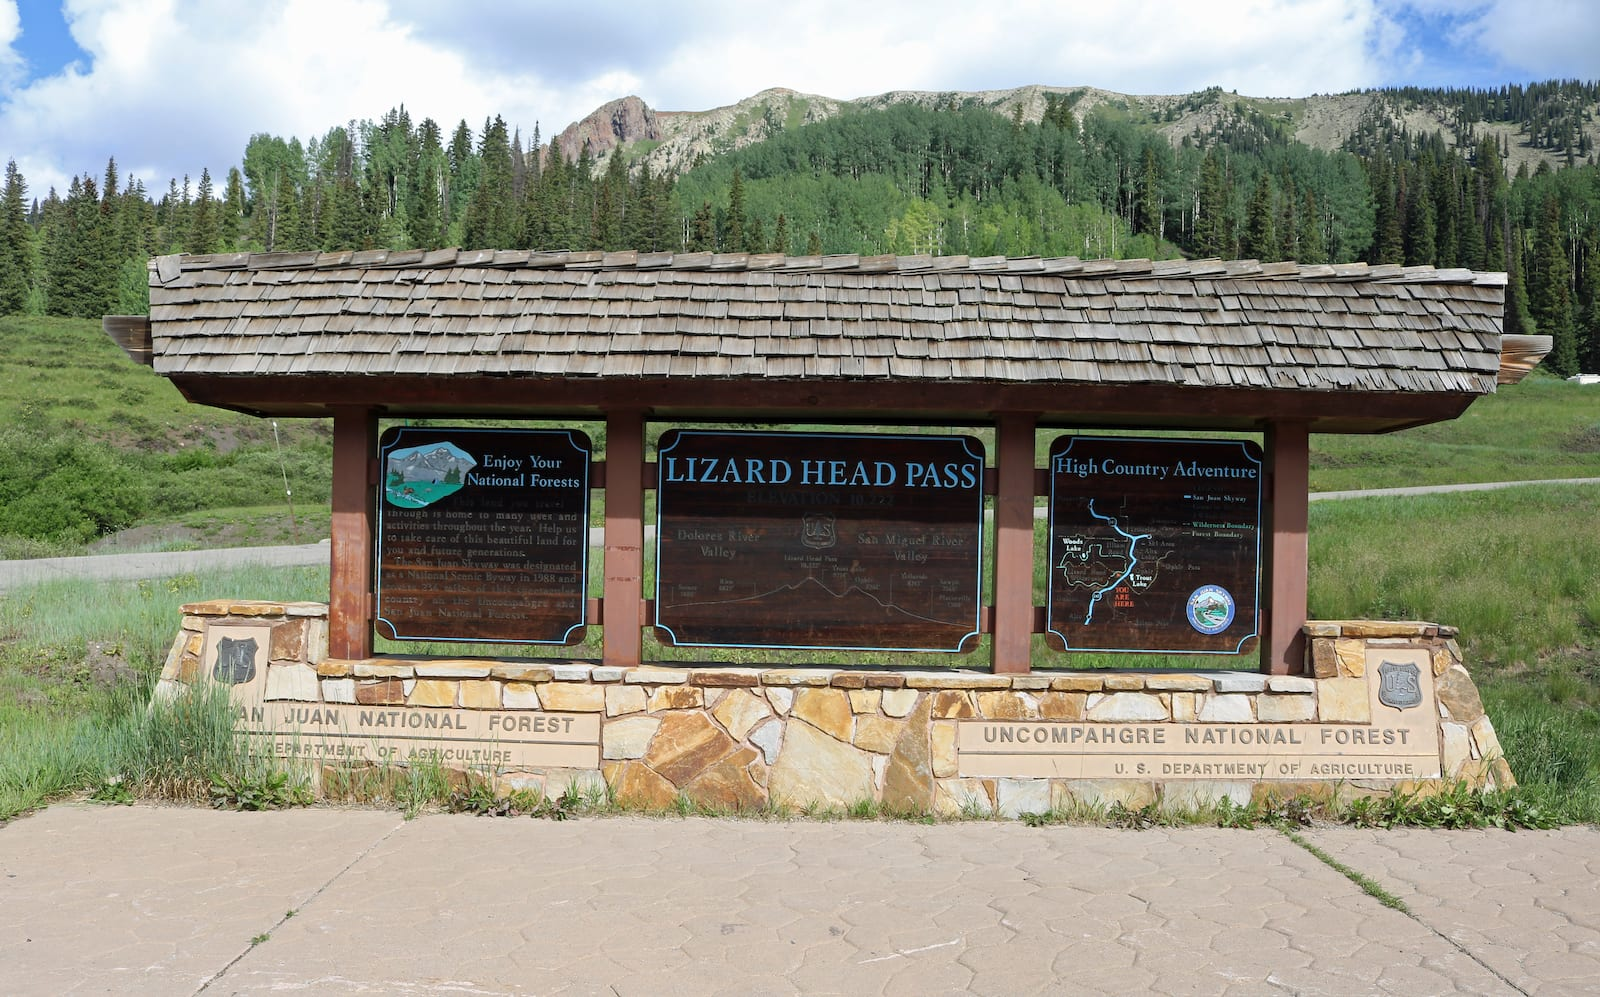 The sign for Lizard Head Pass, CO